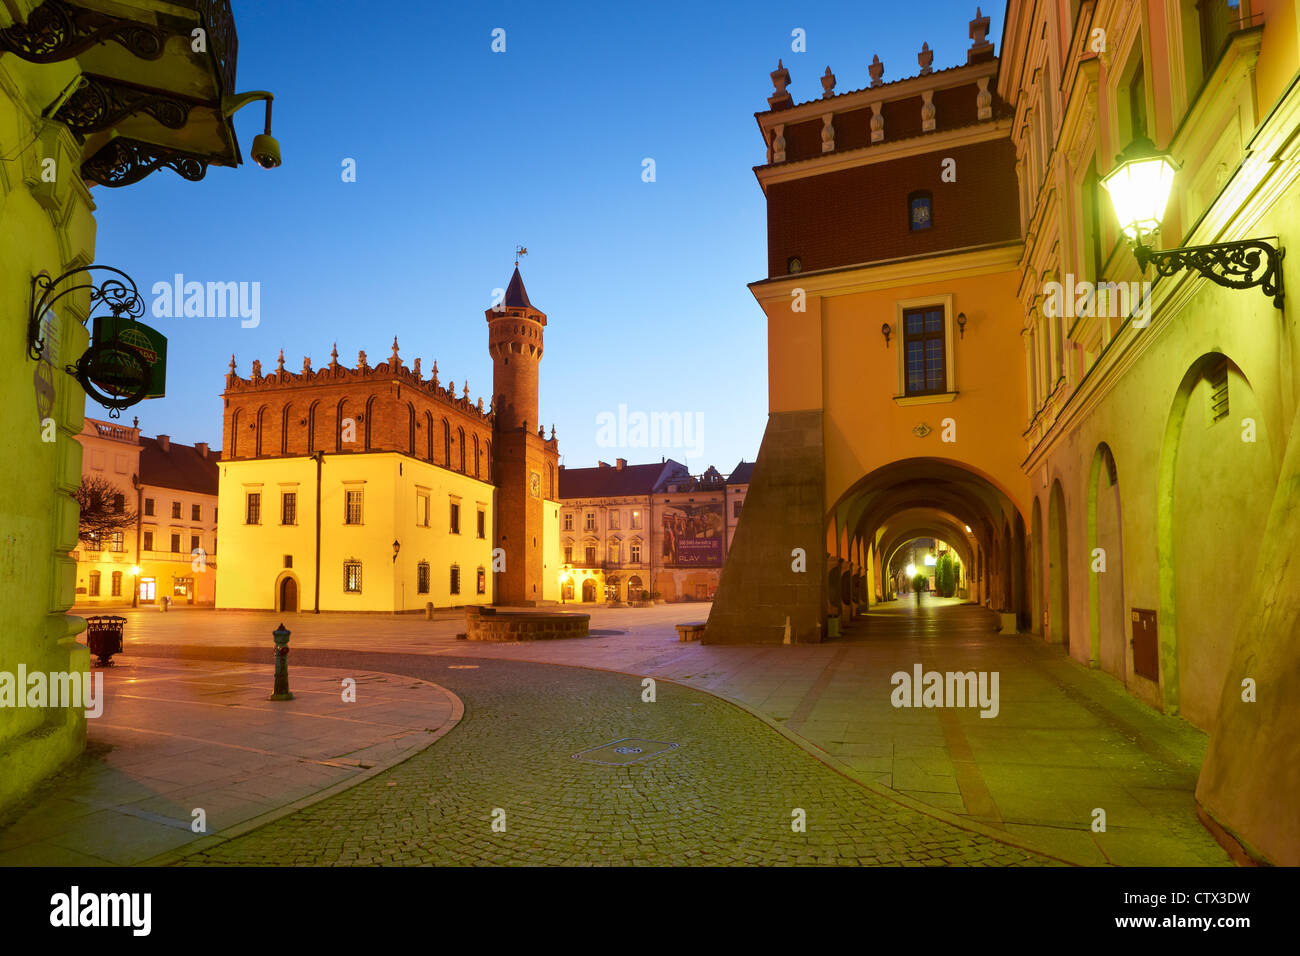 Tarnow, The Old Town, Poland, Europe - Stock Image